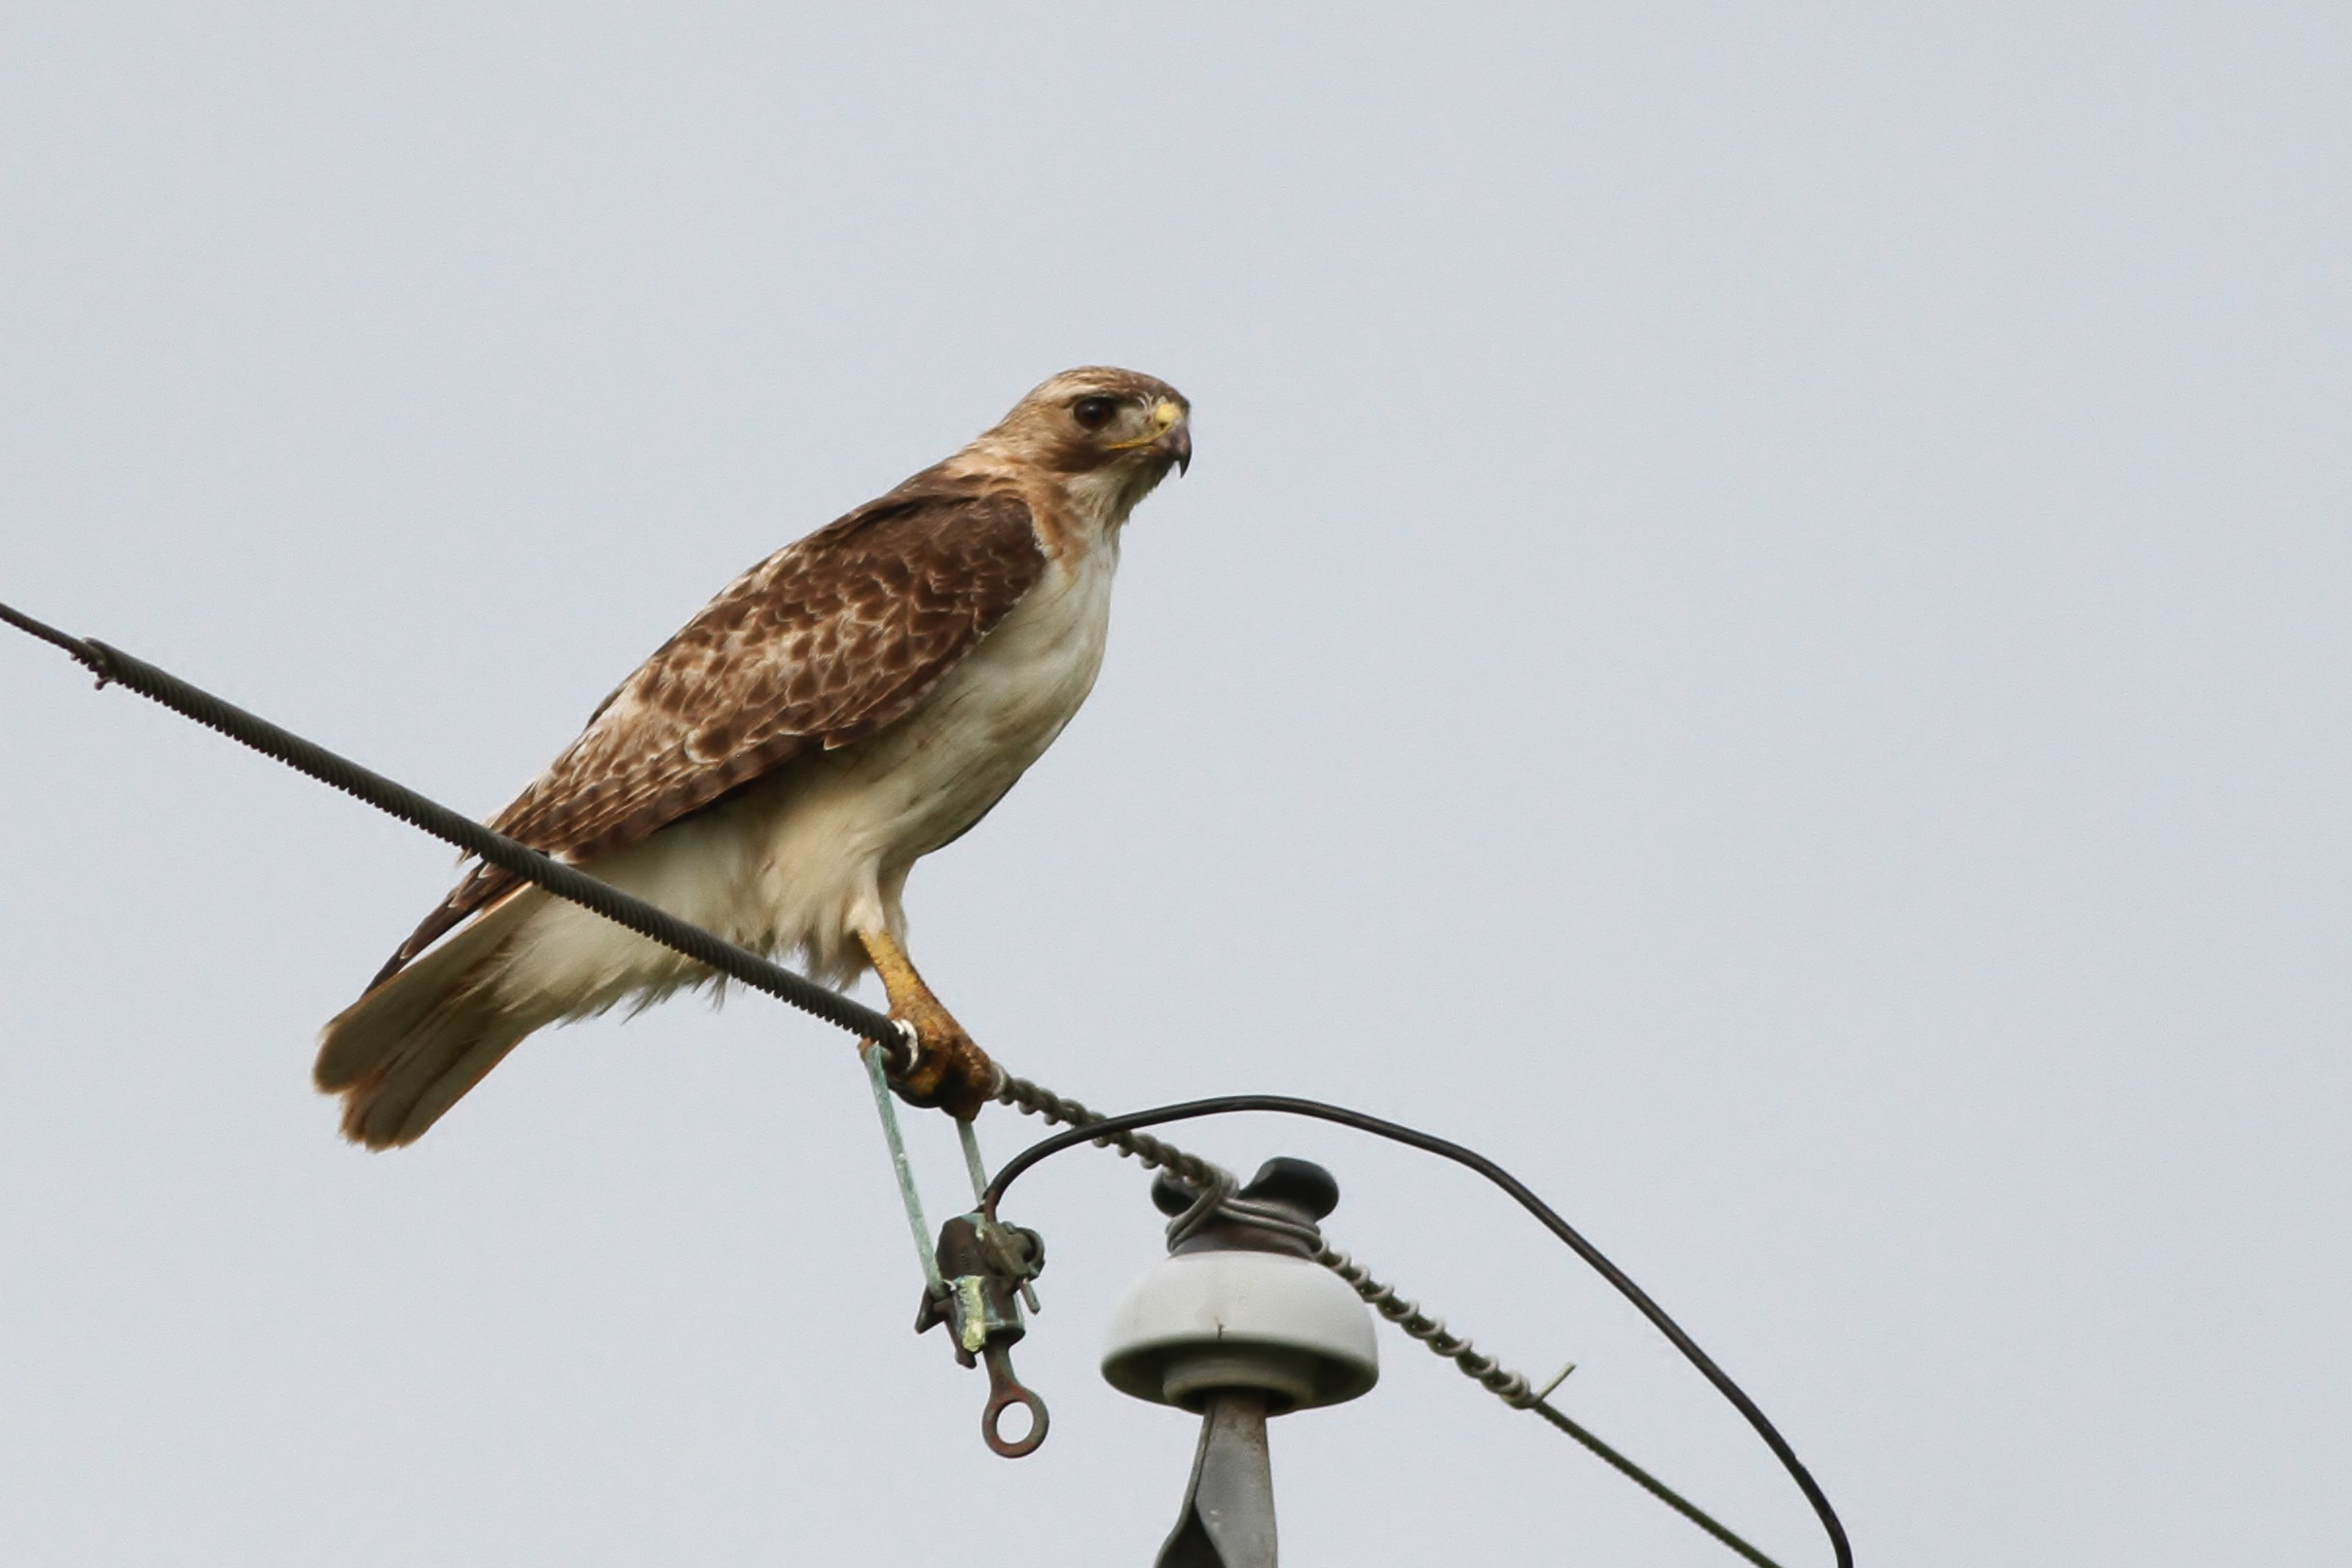 Heres A Typical Red Tailed Hawk From South Texas